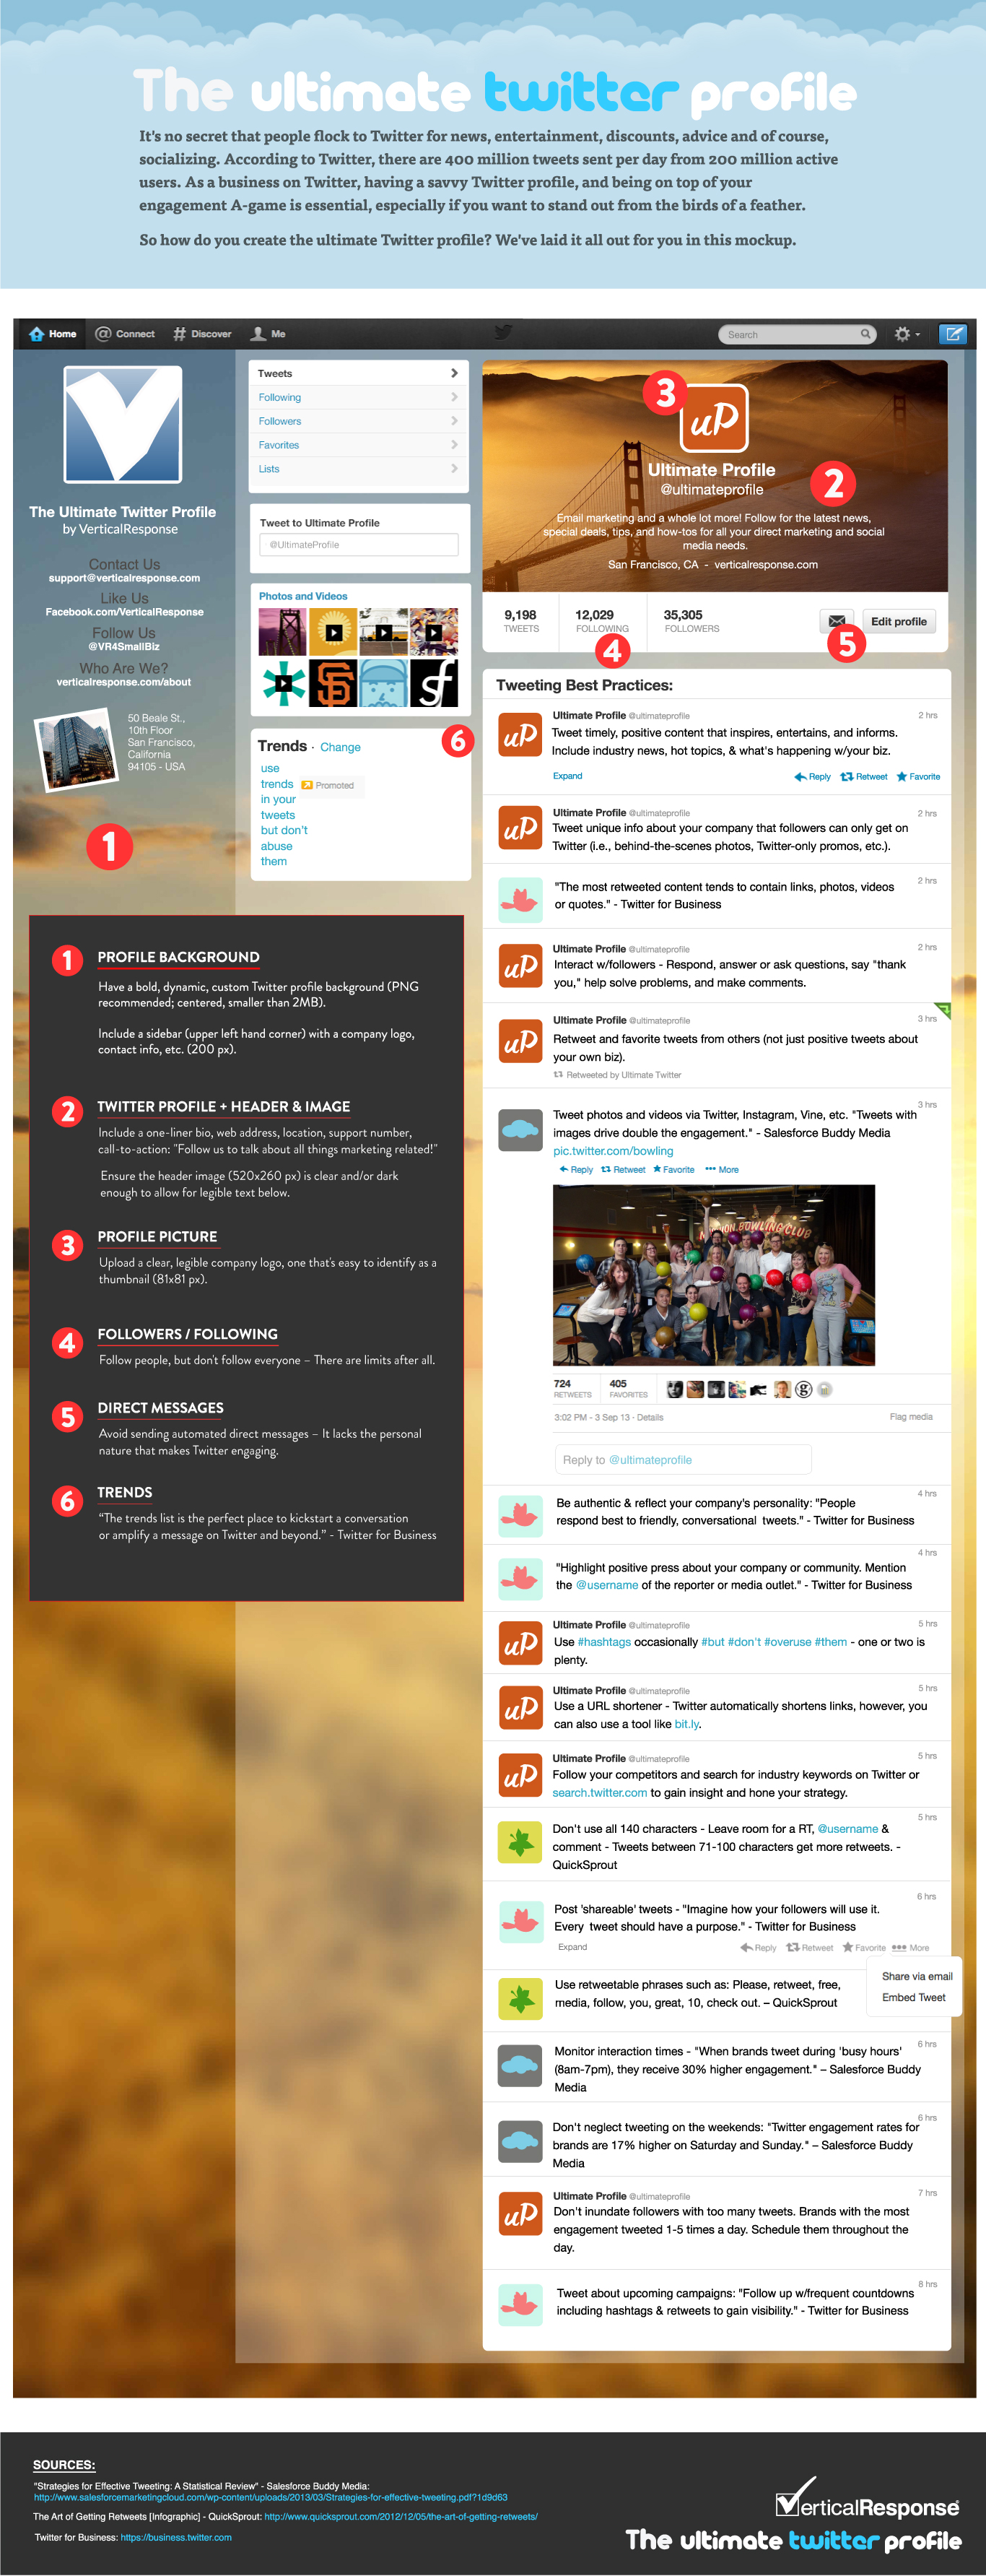 The Ultimate Twitter Profile [Infographic]